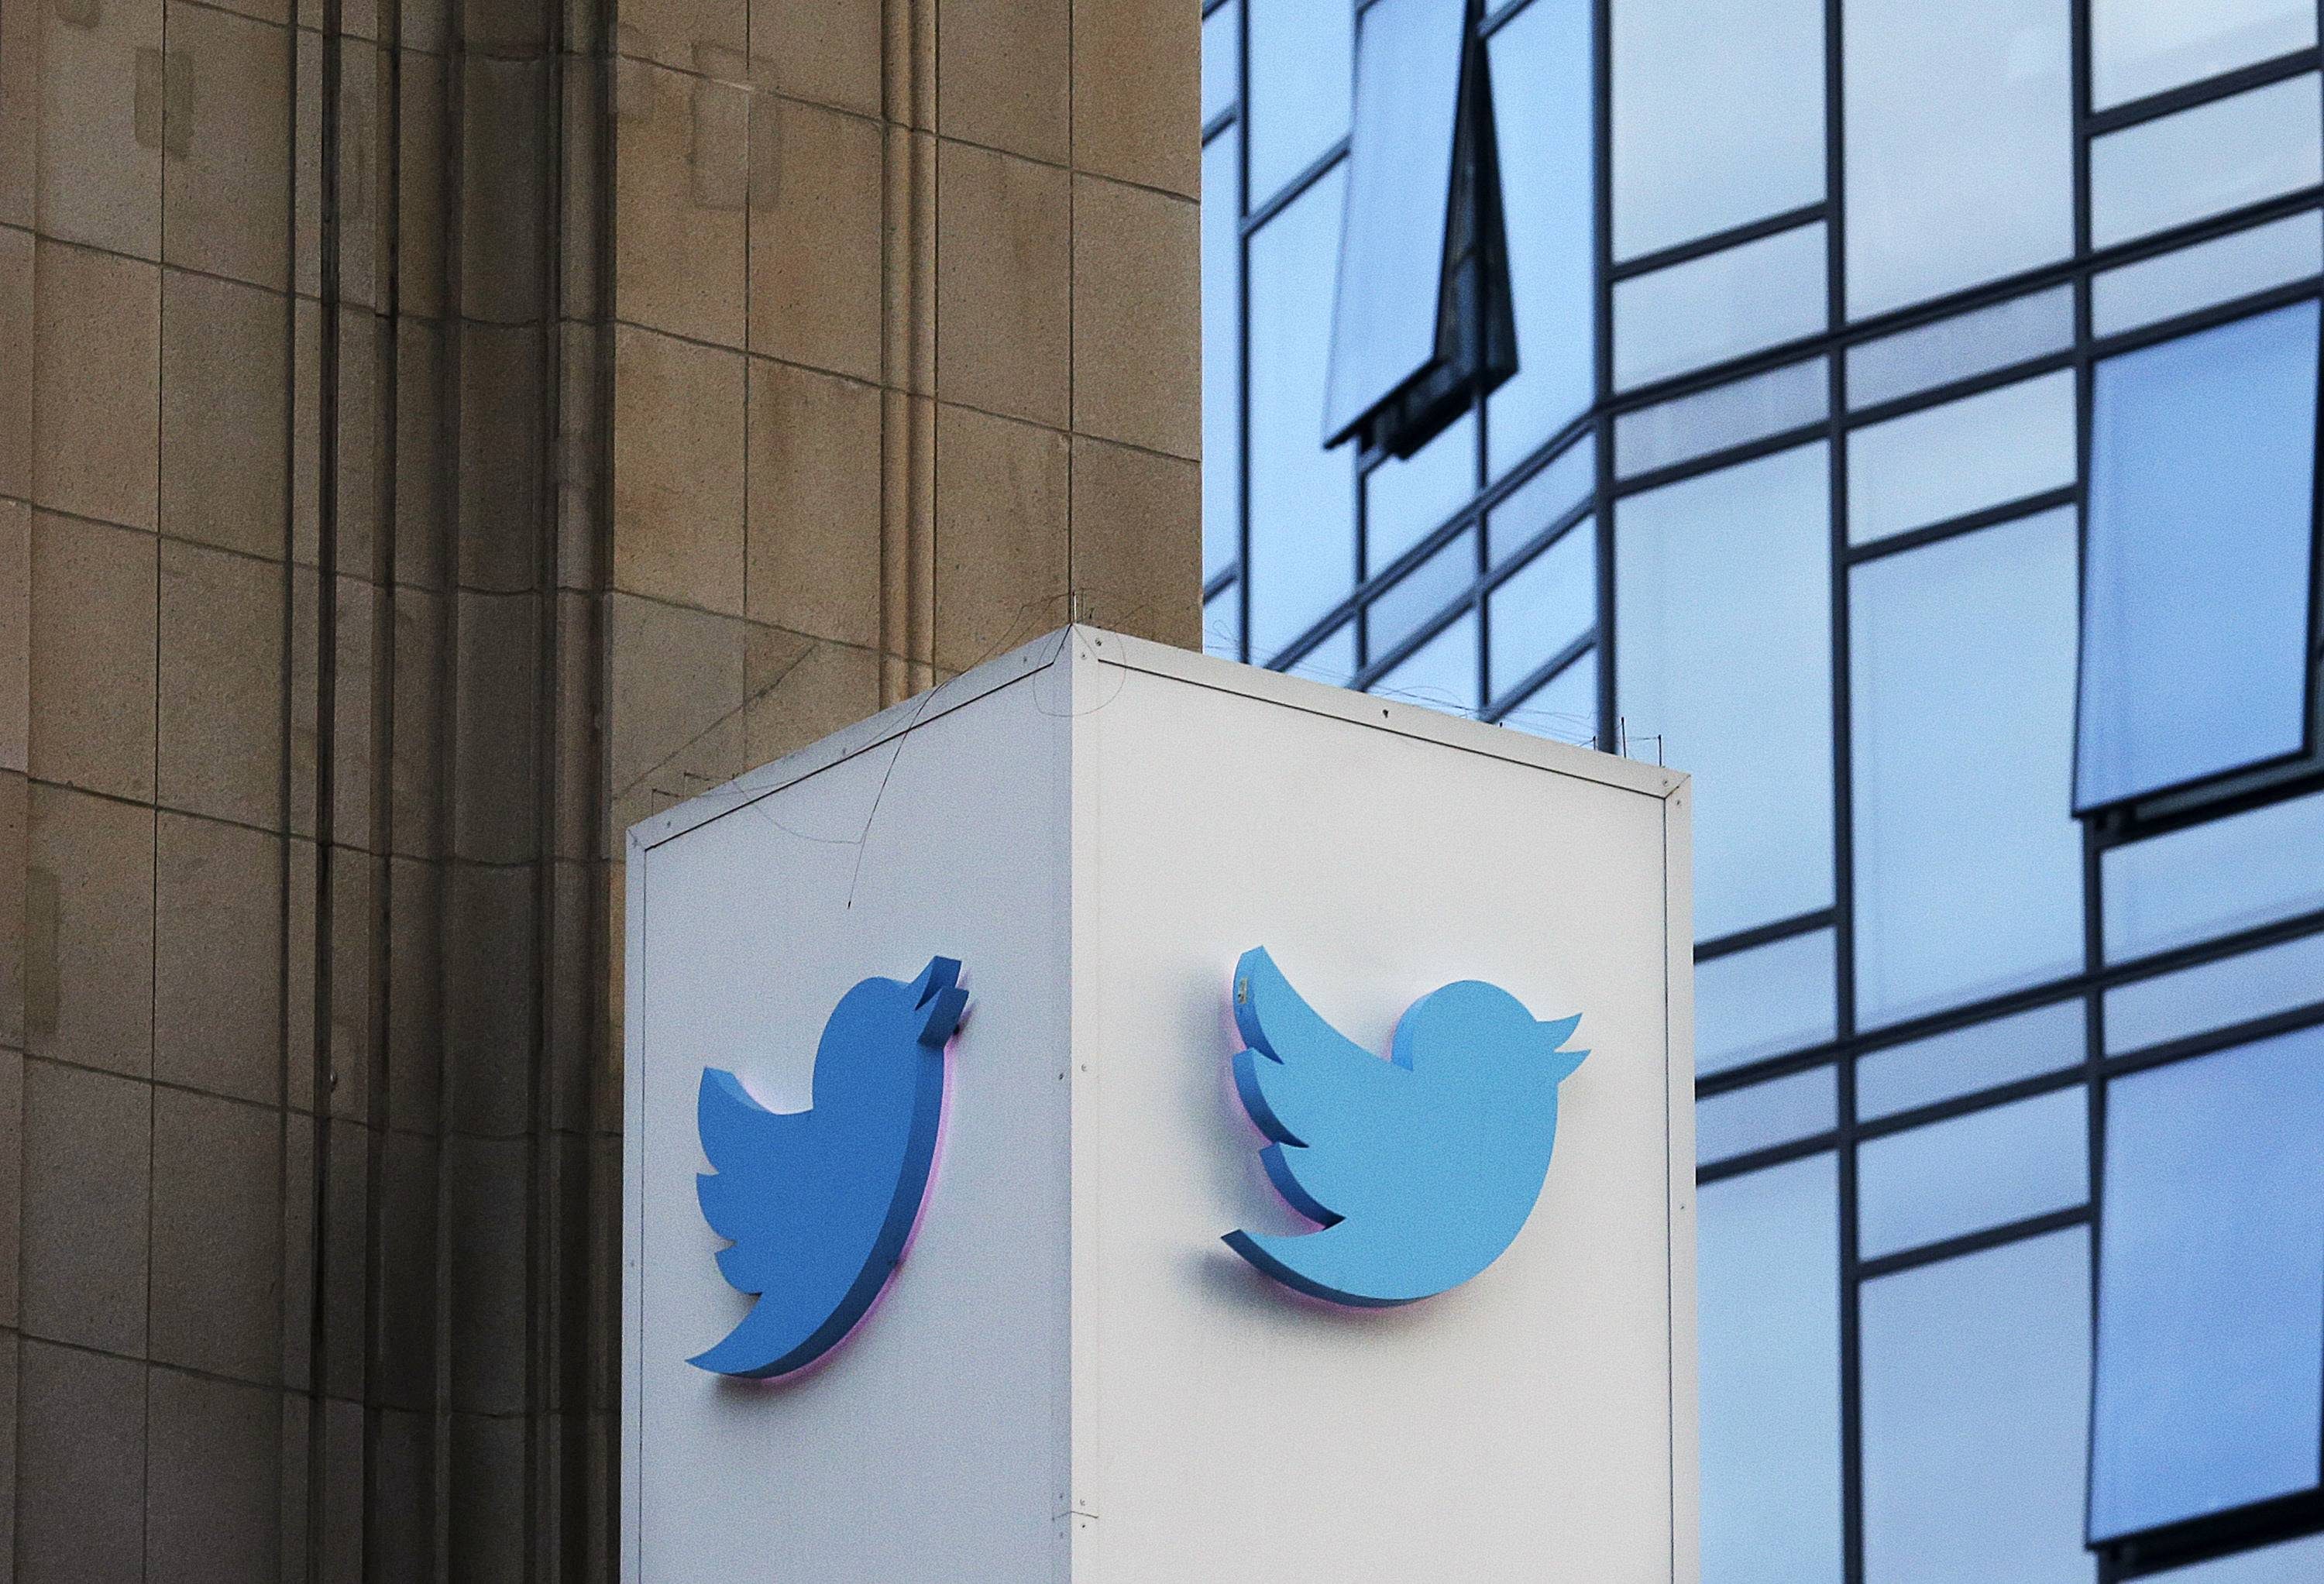 A white nationalist advocate is suing Twitter for banning his account amid the company's recent crackdown on content it deems abusive. Jared Taylor filed the lawsuit Tuesday in a San Francisco state court. Taylor joins a growing list of extreme right wing groups and figures suing social media sites for banning their accounts and content.